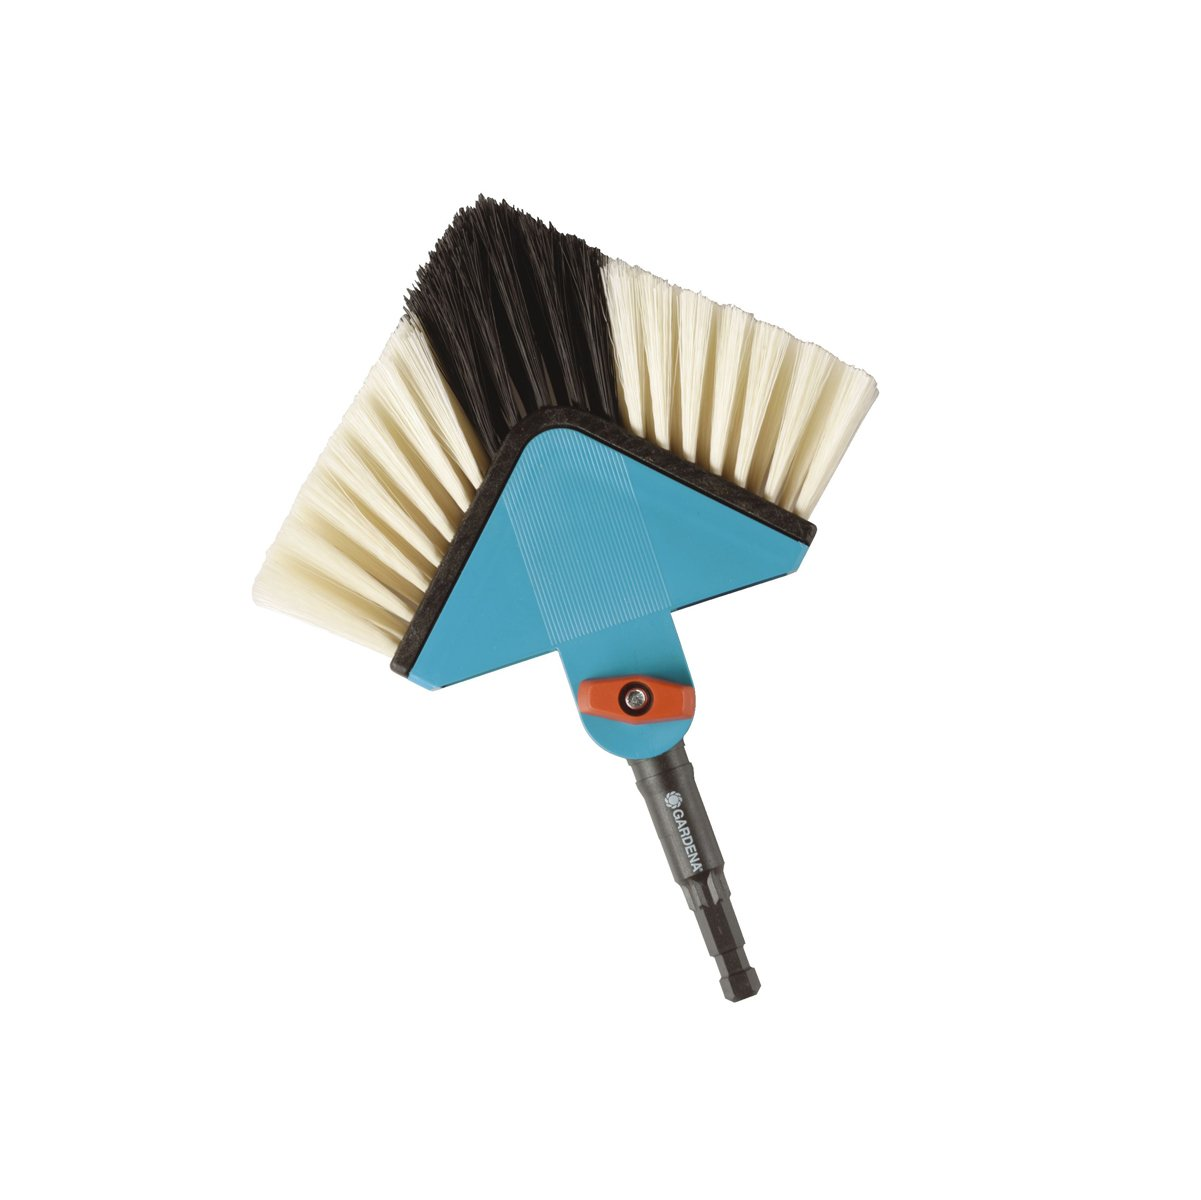 Gardena 3633 Combisystem Overhead Cleaning Angle Broom Head 3633-U